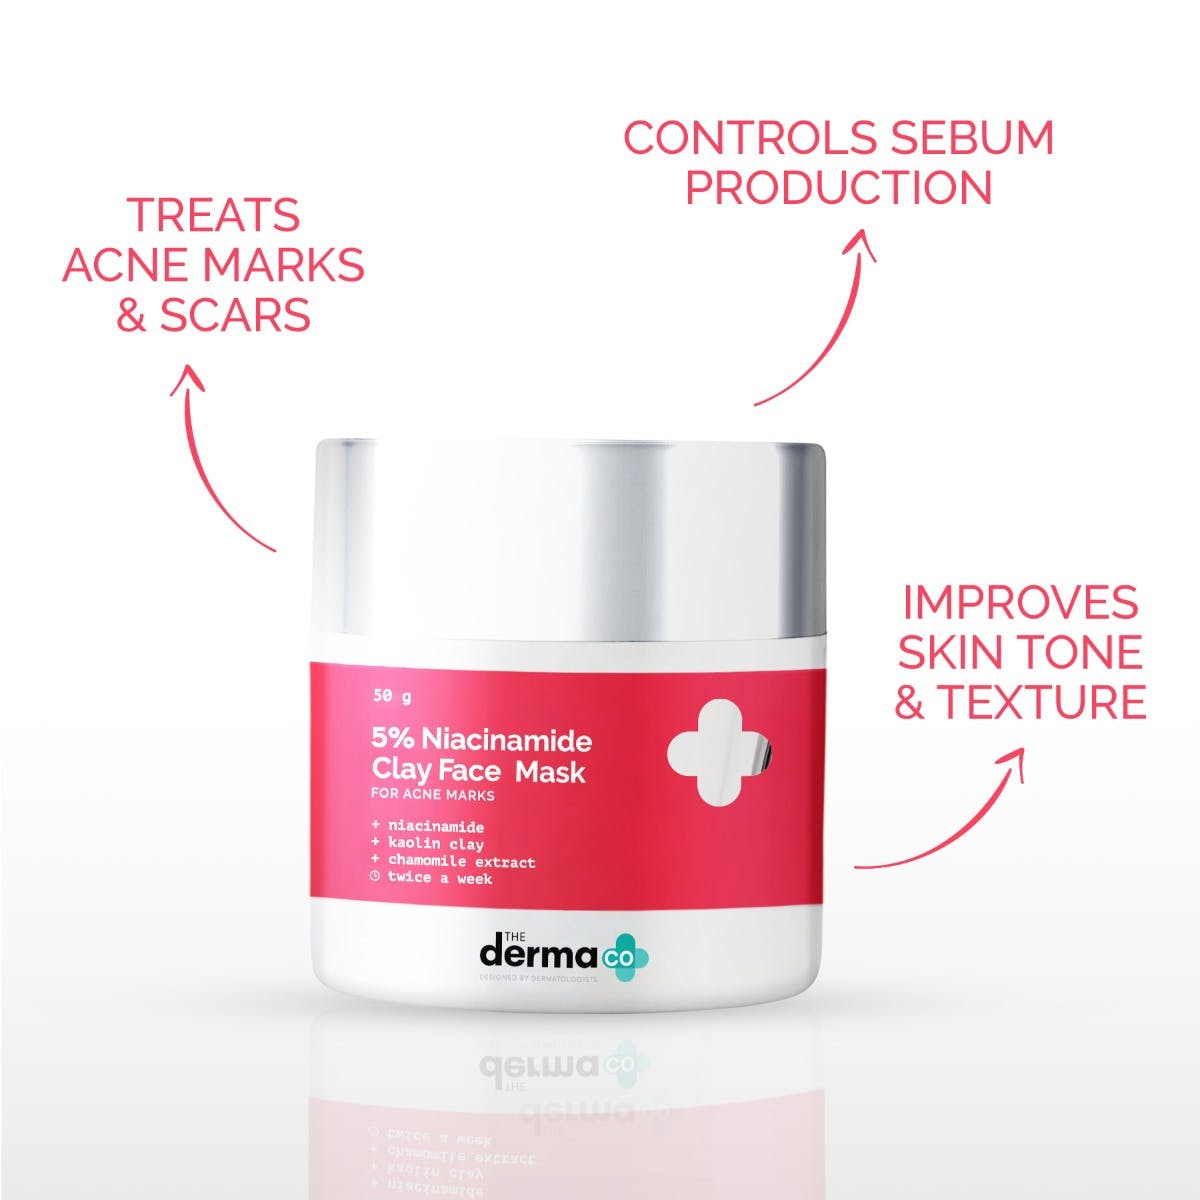 5% Niacinamide Clay Face Mask